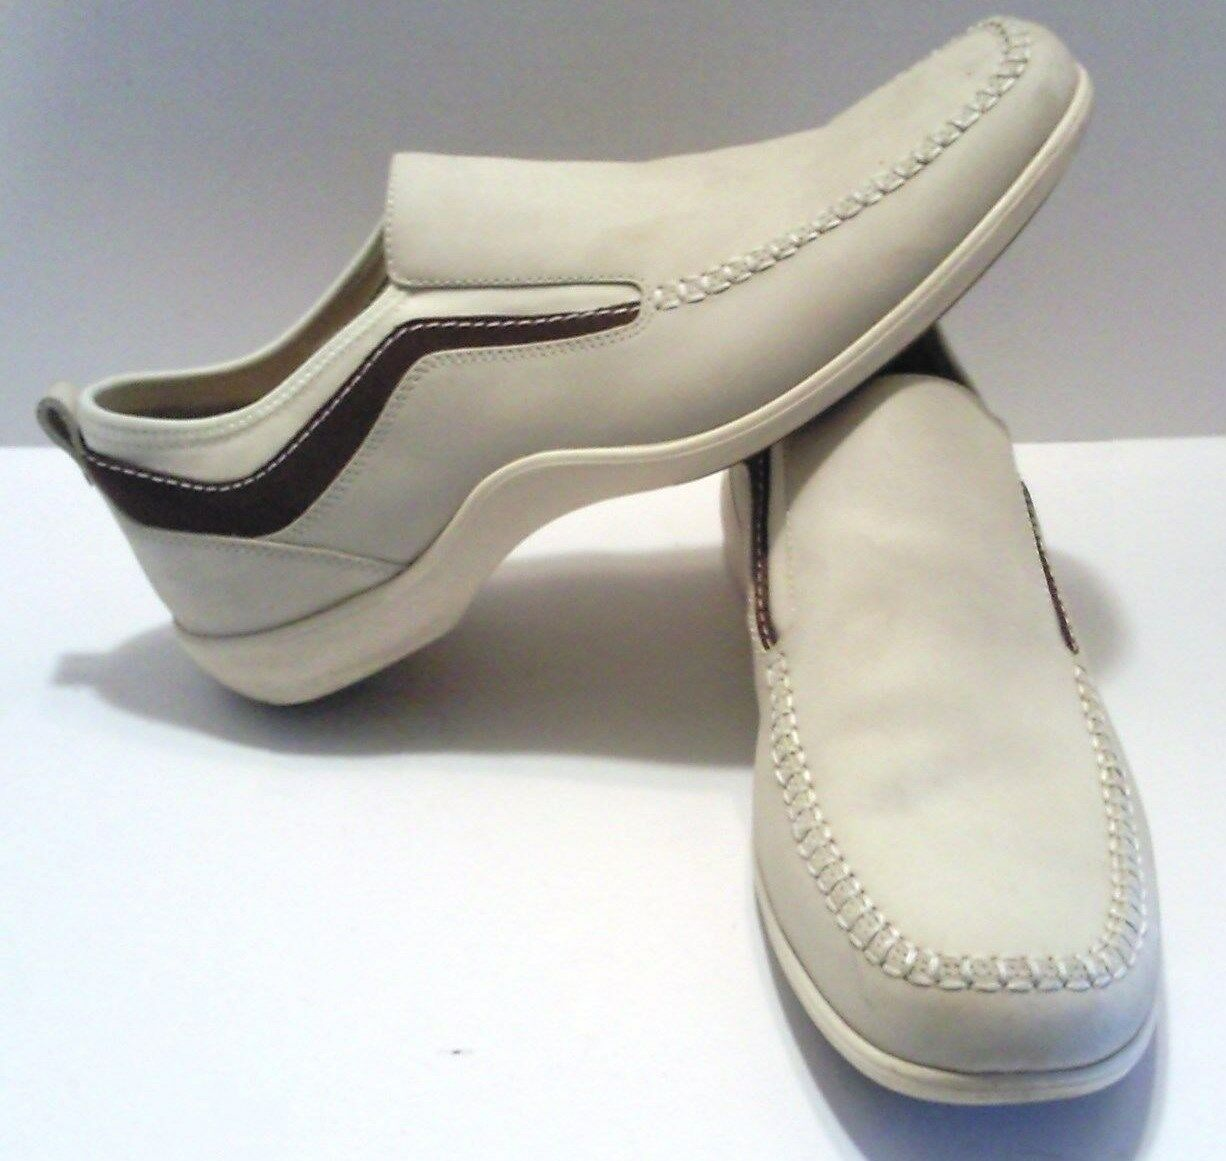 COLE HAAN G SERIES TAN SUEDE MEN'S LOAFERS 11 M